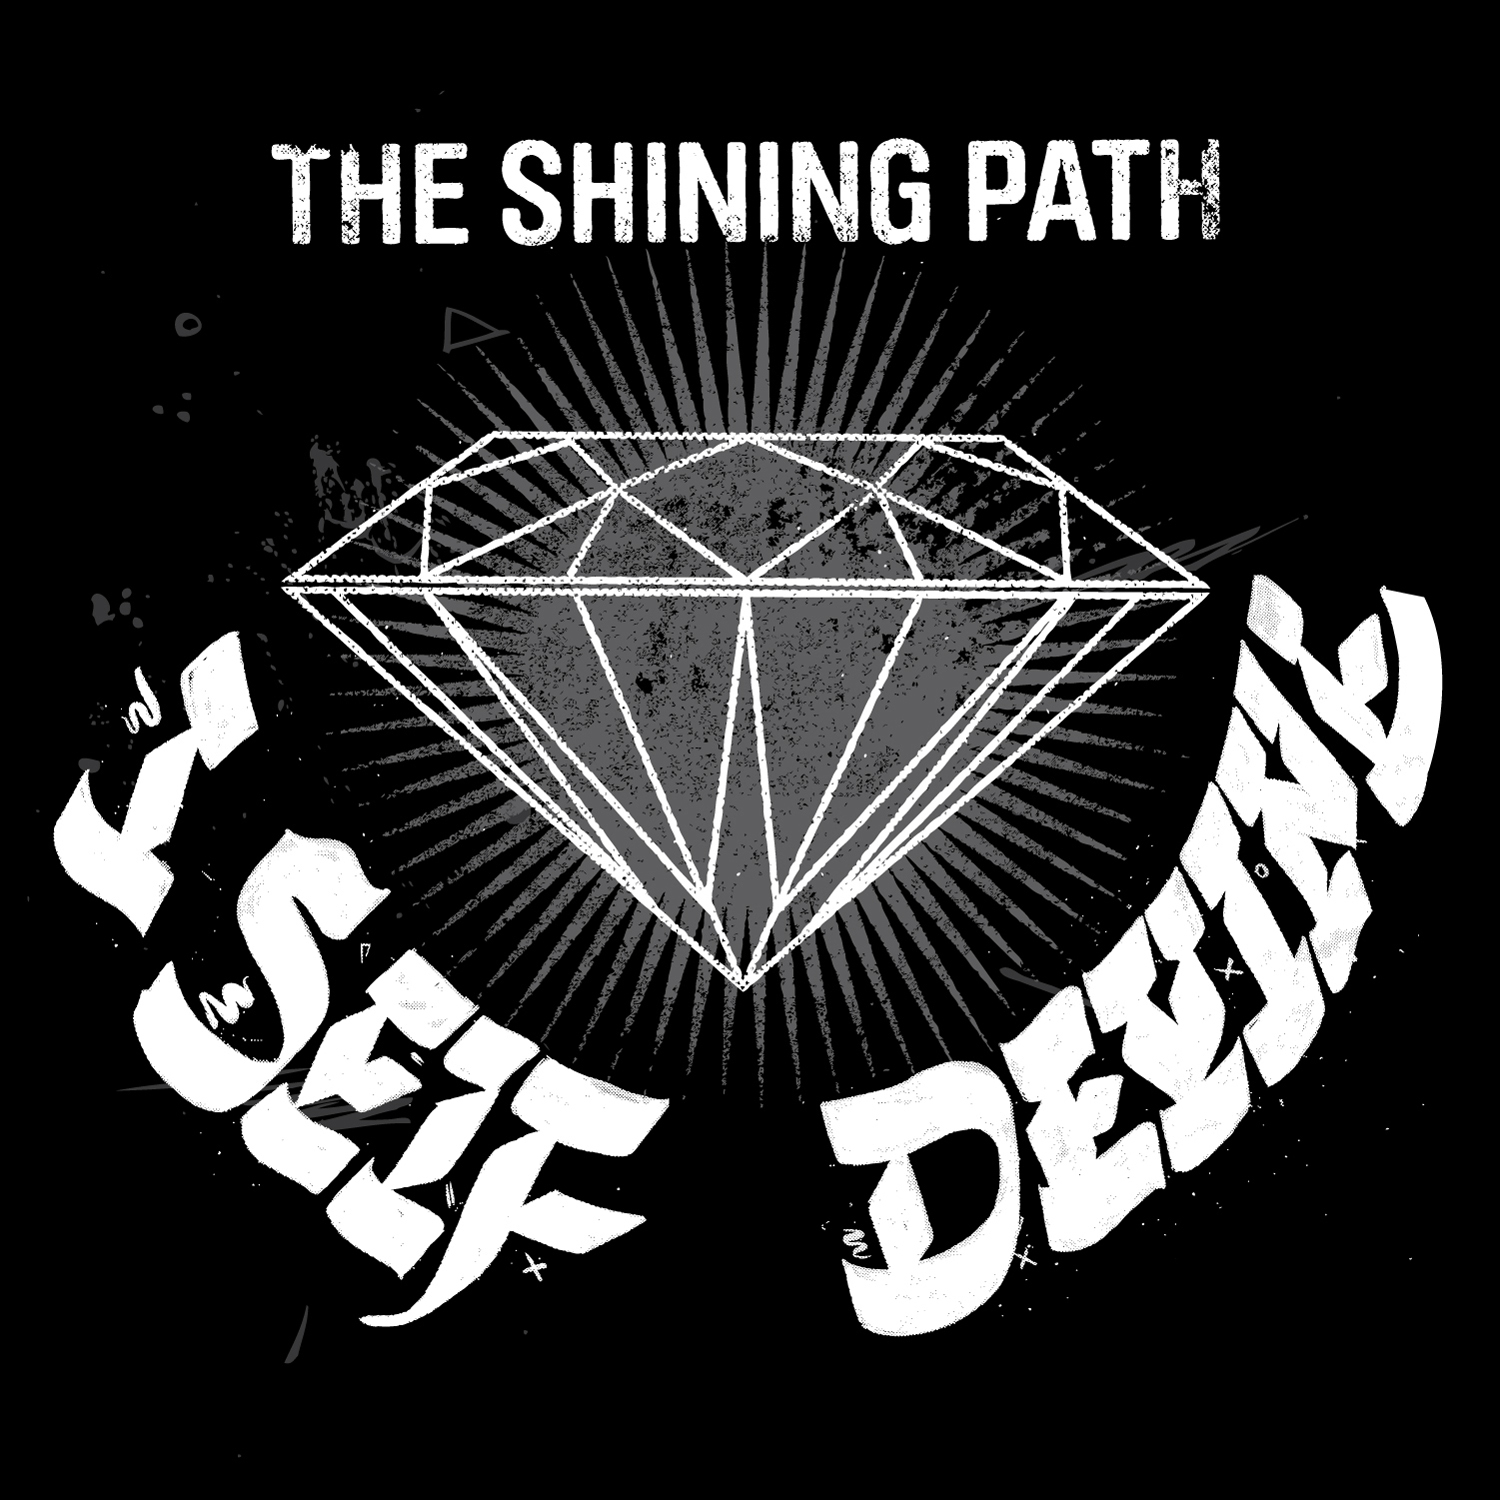 I Self The Shining Path Cover